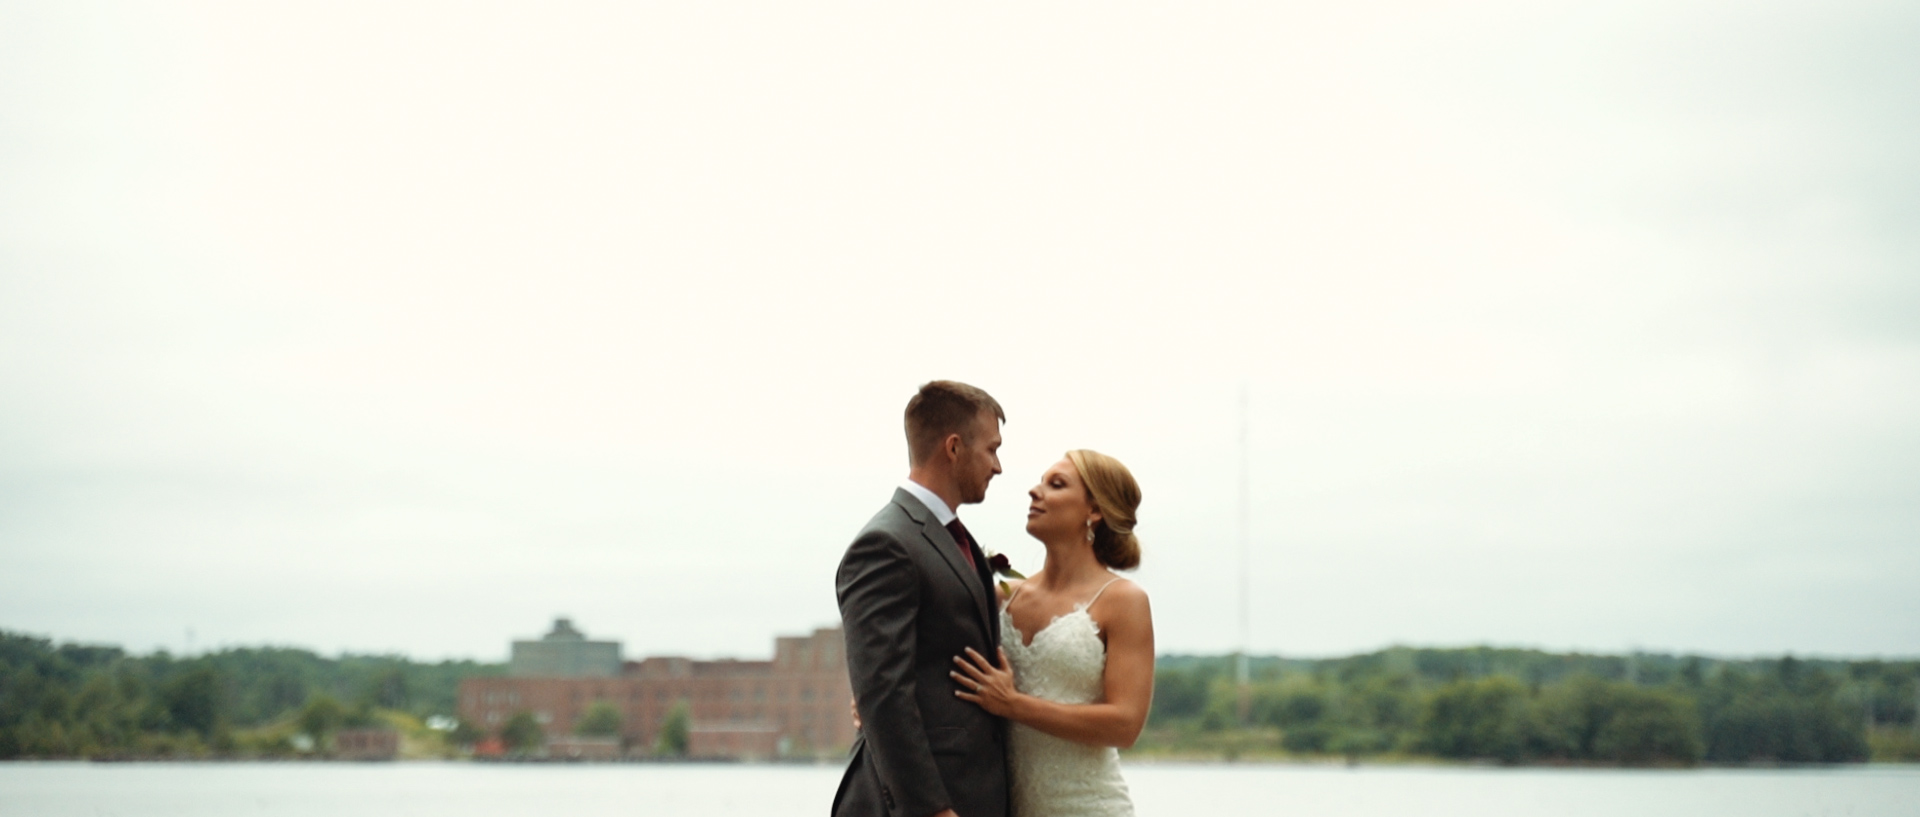 maine maritime museum bath maine wedding photography videography